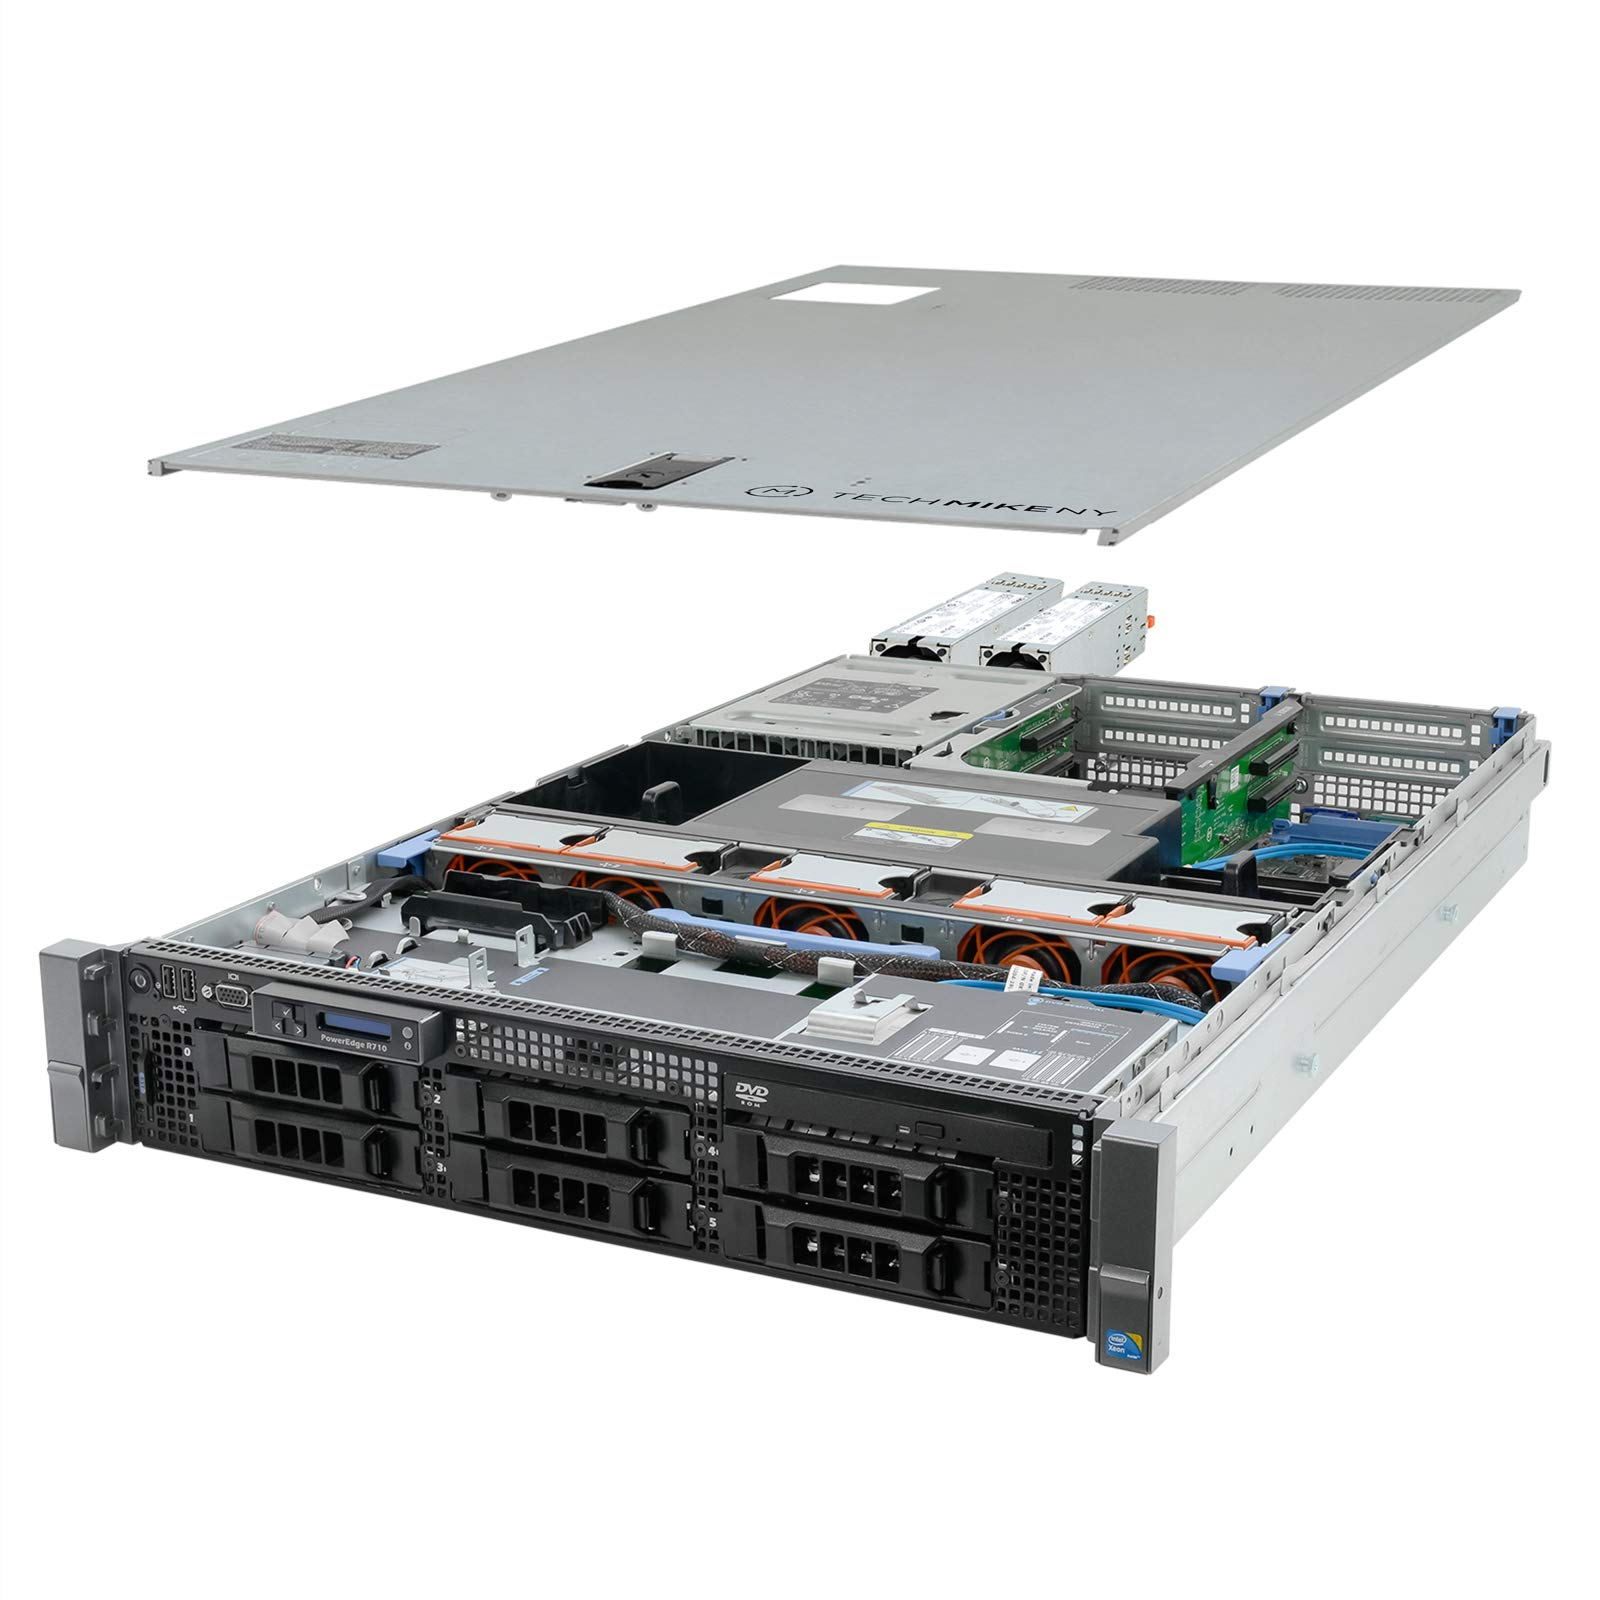 TechMikeNY High-End Virtualization Server V2 12-Core 144GB RAM 24TB RAID PowerEdge R710 (Renewed) by Dell